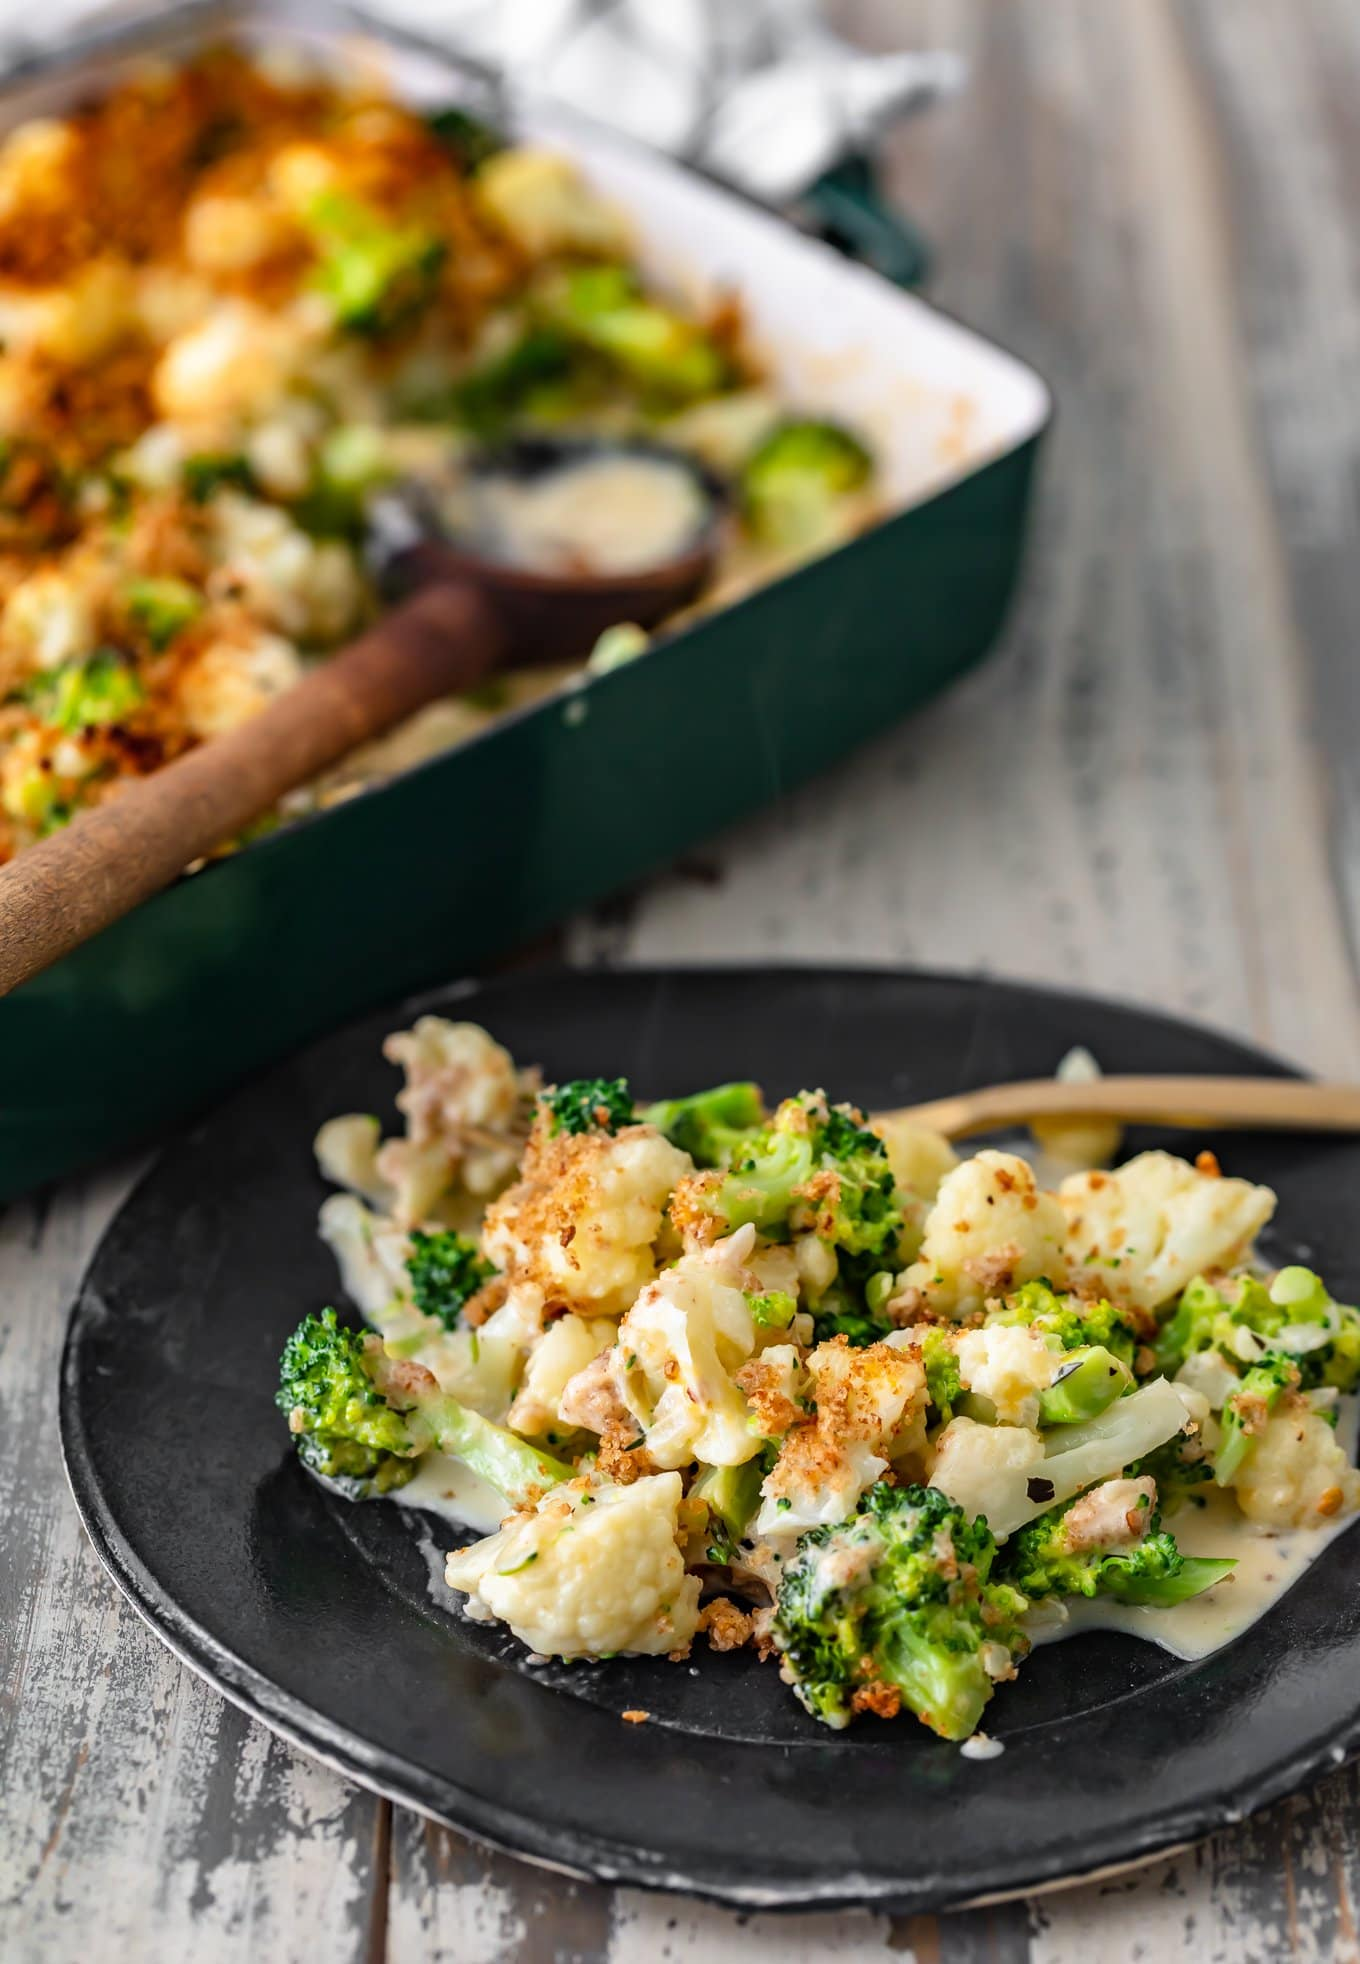 a plate of cauliflower broccoli gratin